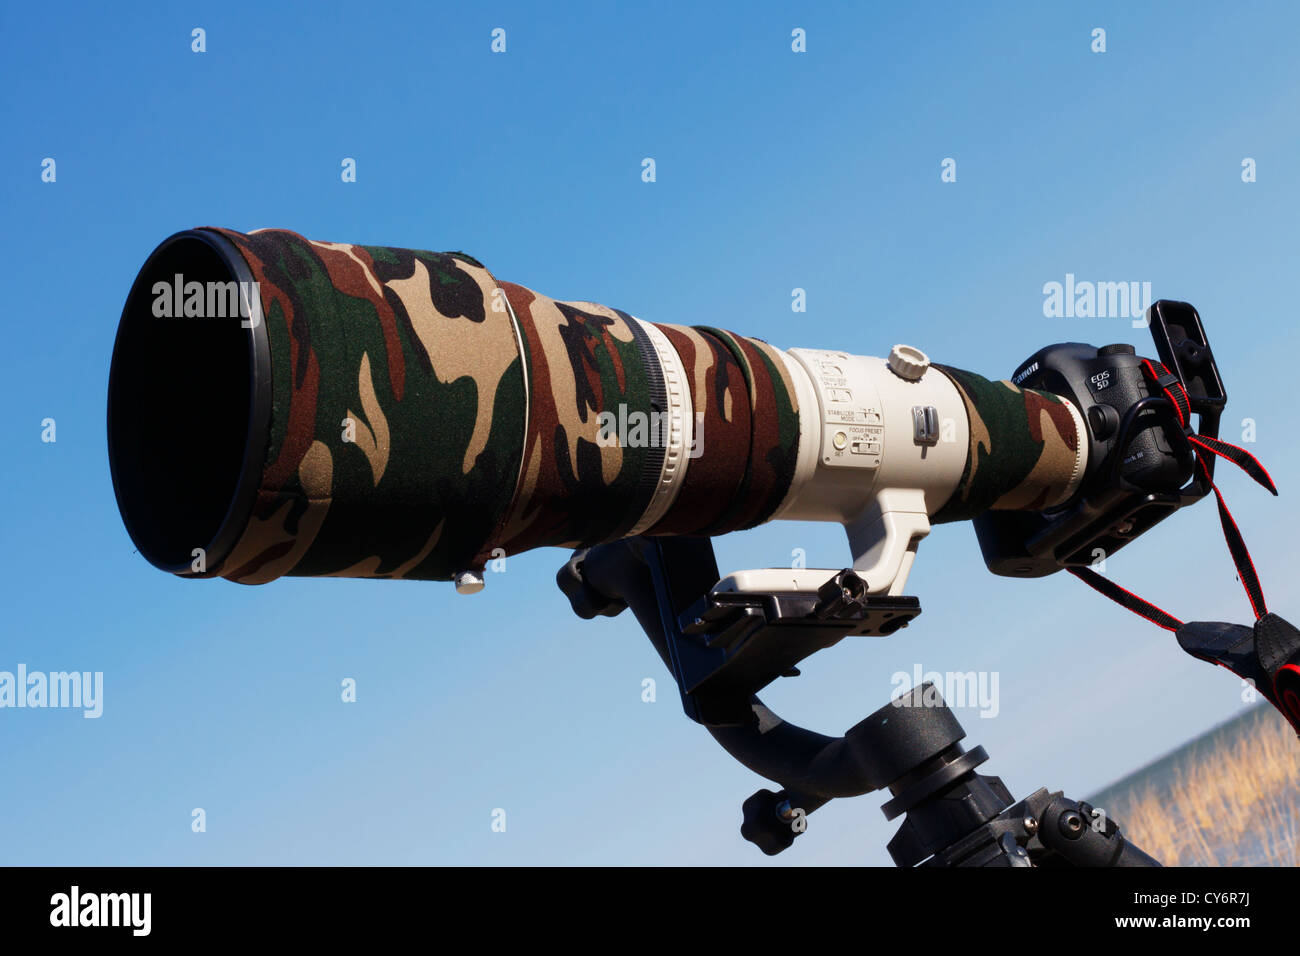 Canon 800mm f/5.6 super telephoto lens and DSLR mounted on a gimbal head. - Stock Image